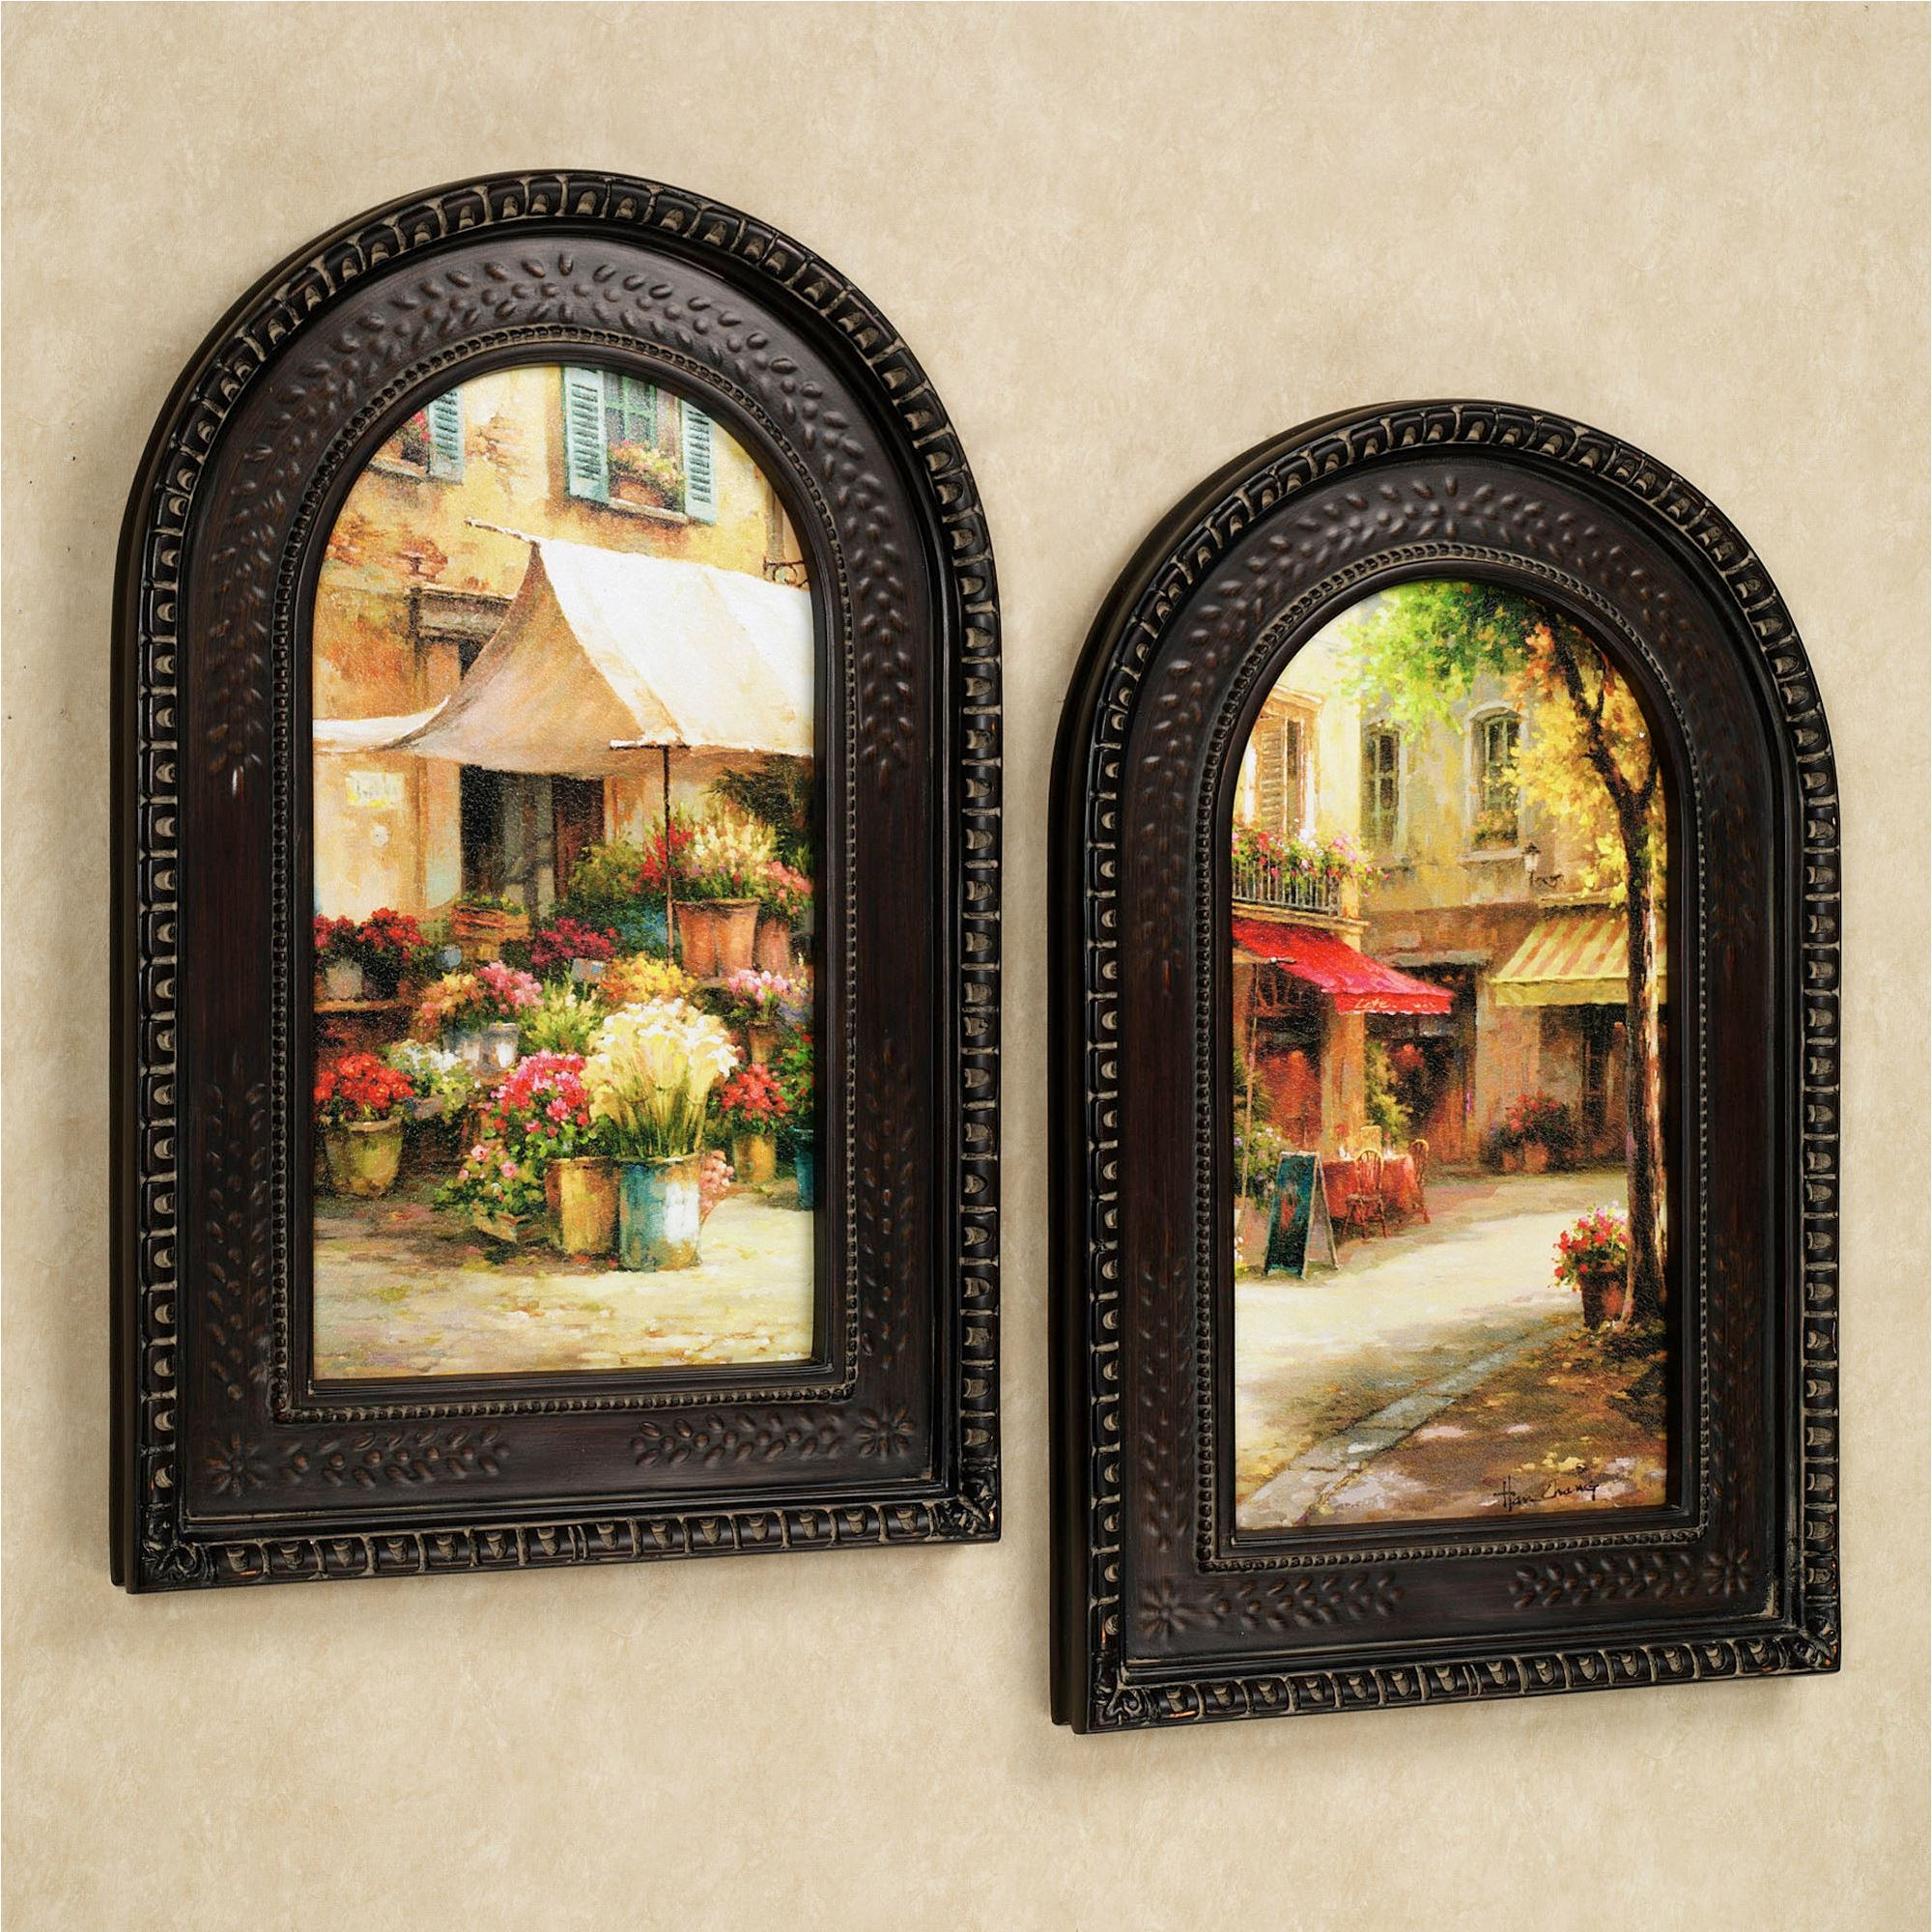 Cheap Kitchen Decor Sets: The Flower Market Arched Framed Wall Art Set